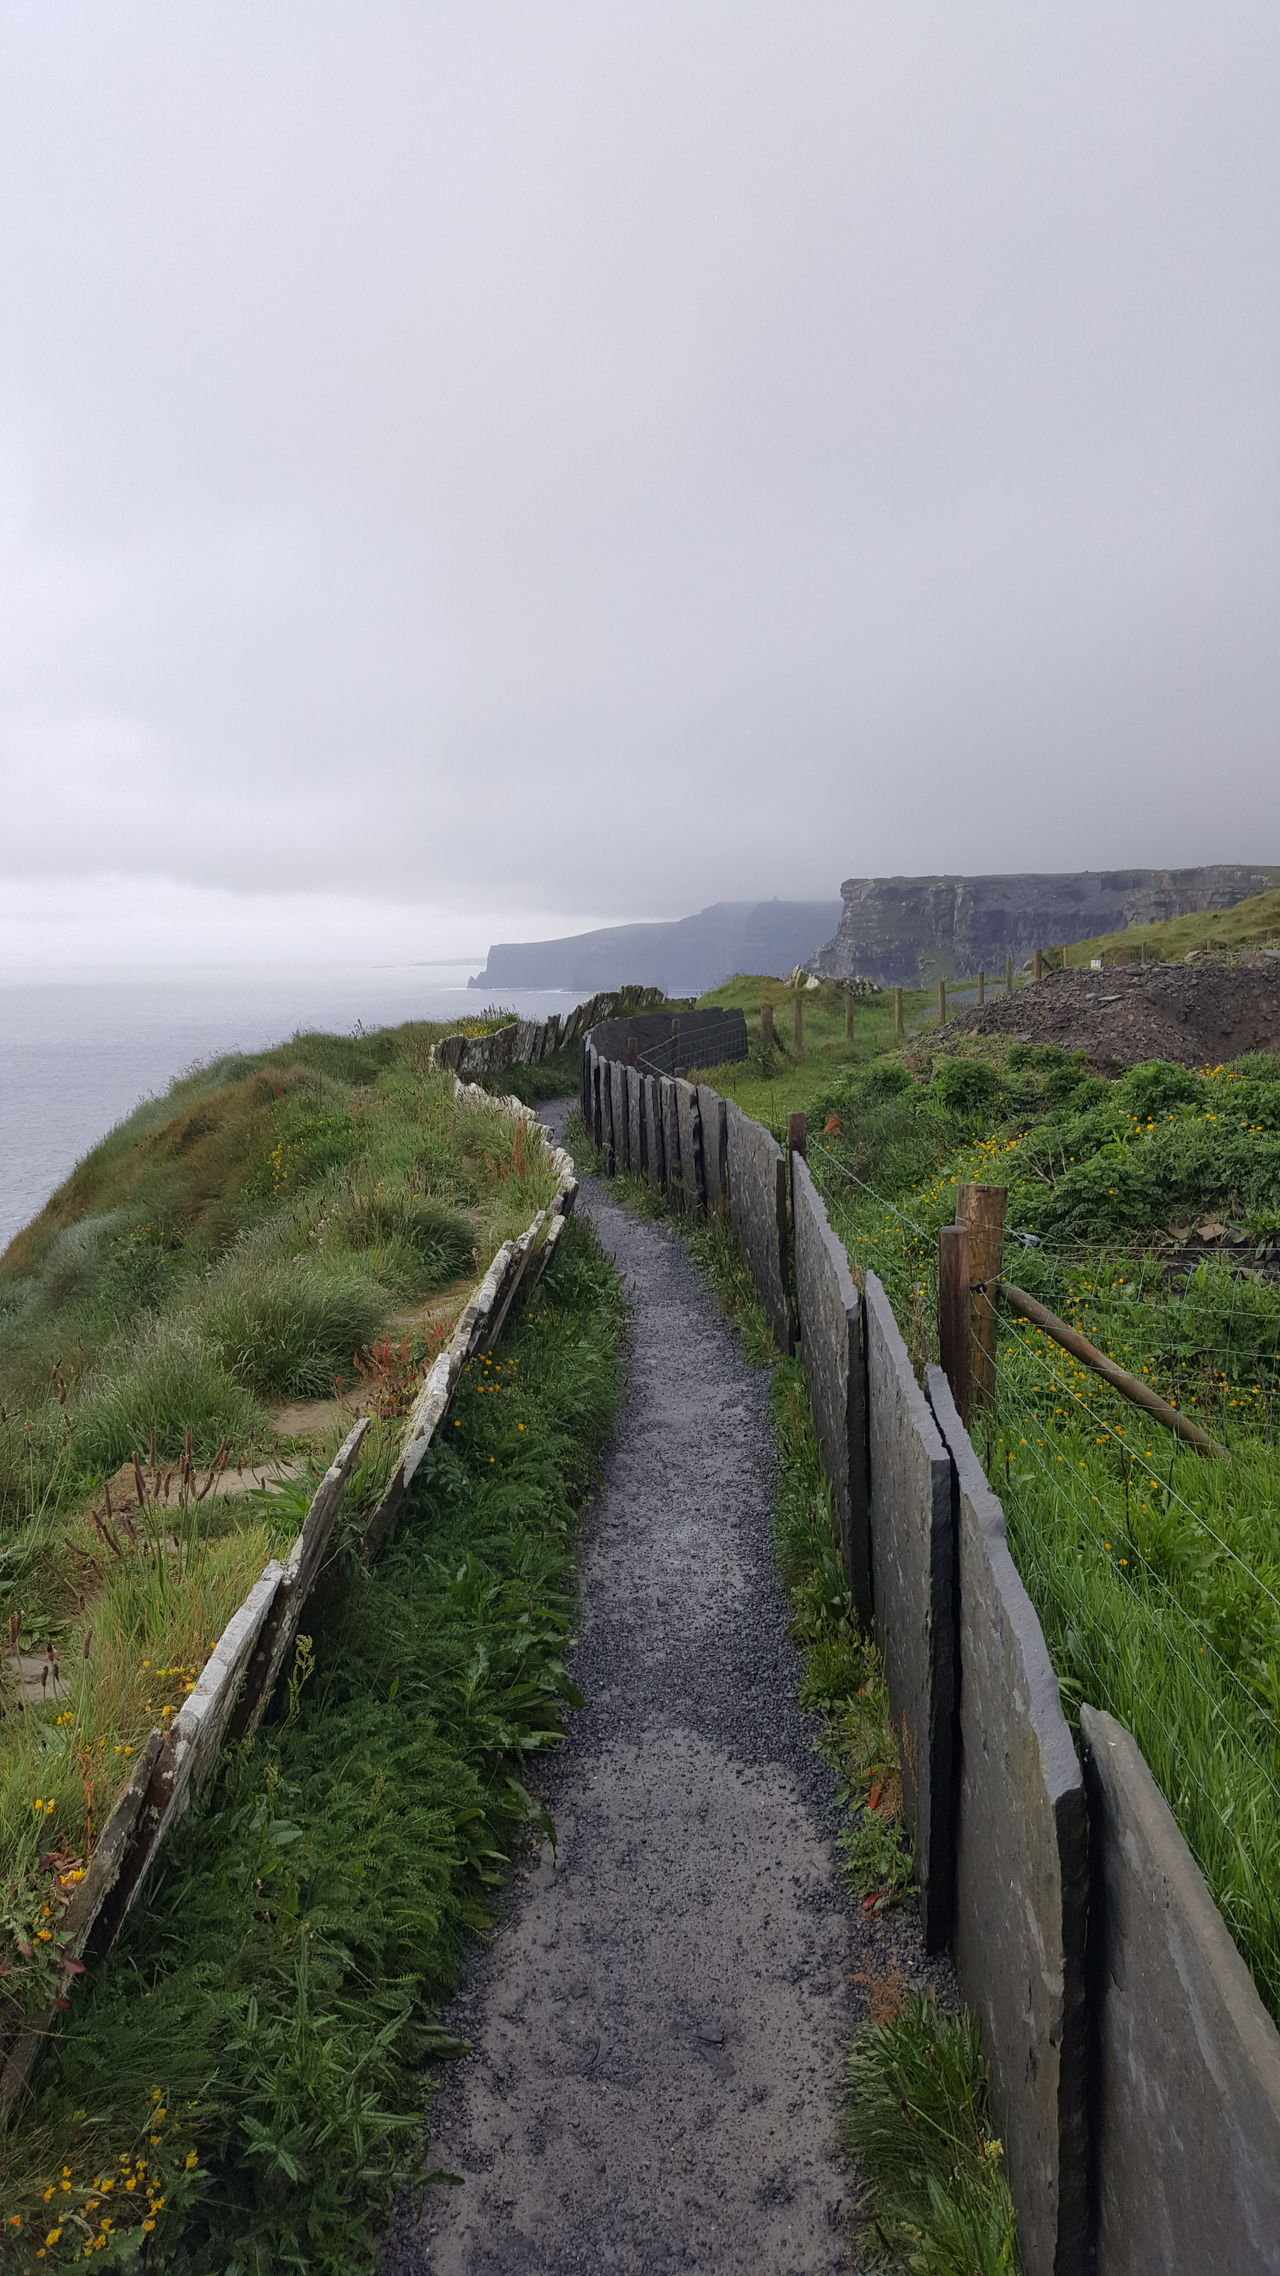 Sea Landscape Tranquility Horizon Over Water Rural Scene Outdoors Beauty In Nature Scenics Travel Destinations Irleand Cliffs Cliffsofmoher Agriculture Day No People Beach Nature Sky Grass